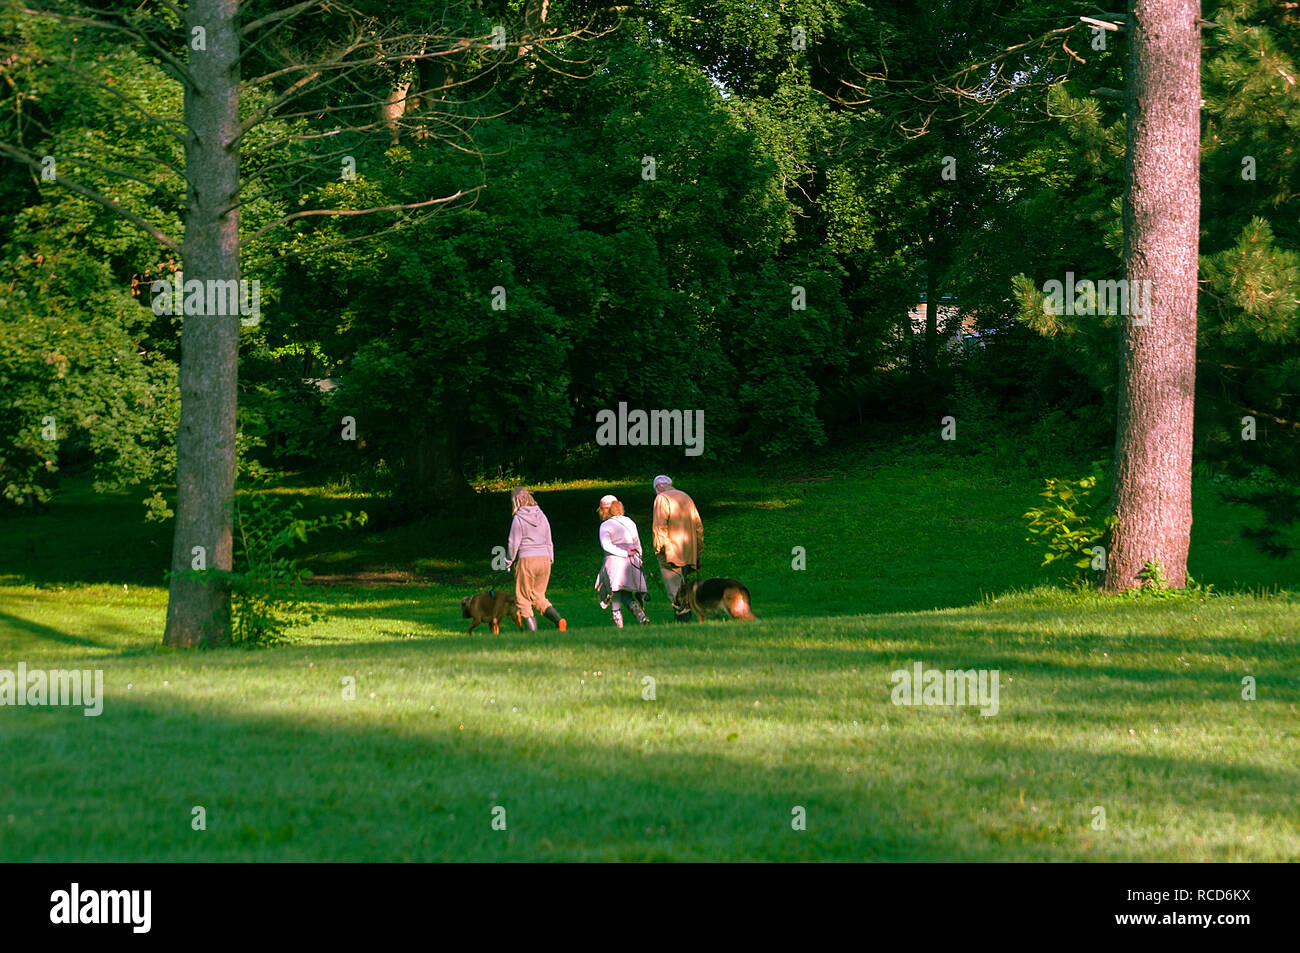 Two mature women and a man with their dogs in a park, Ontario, Canada - Stock Image